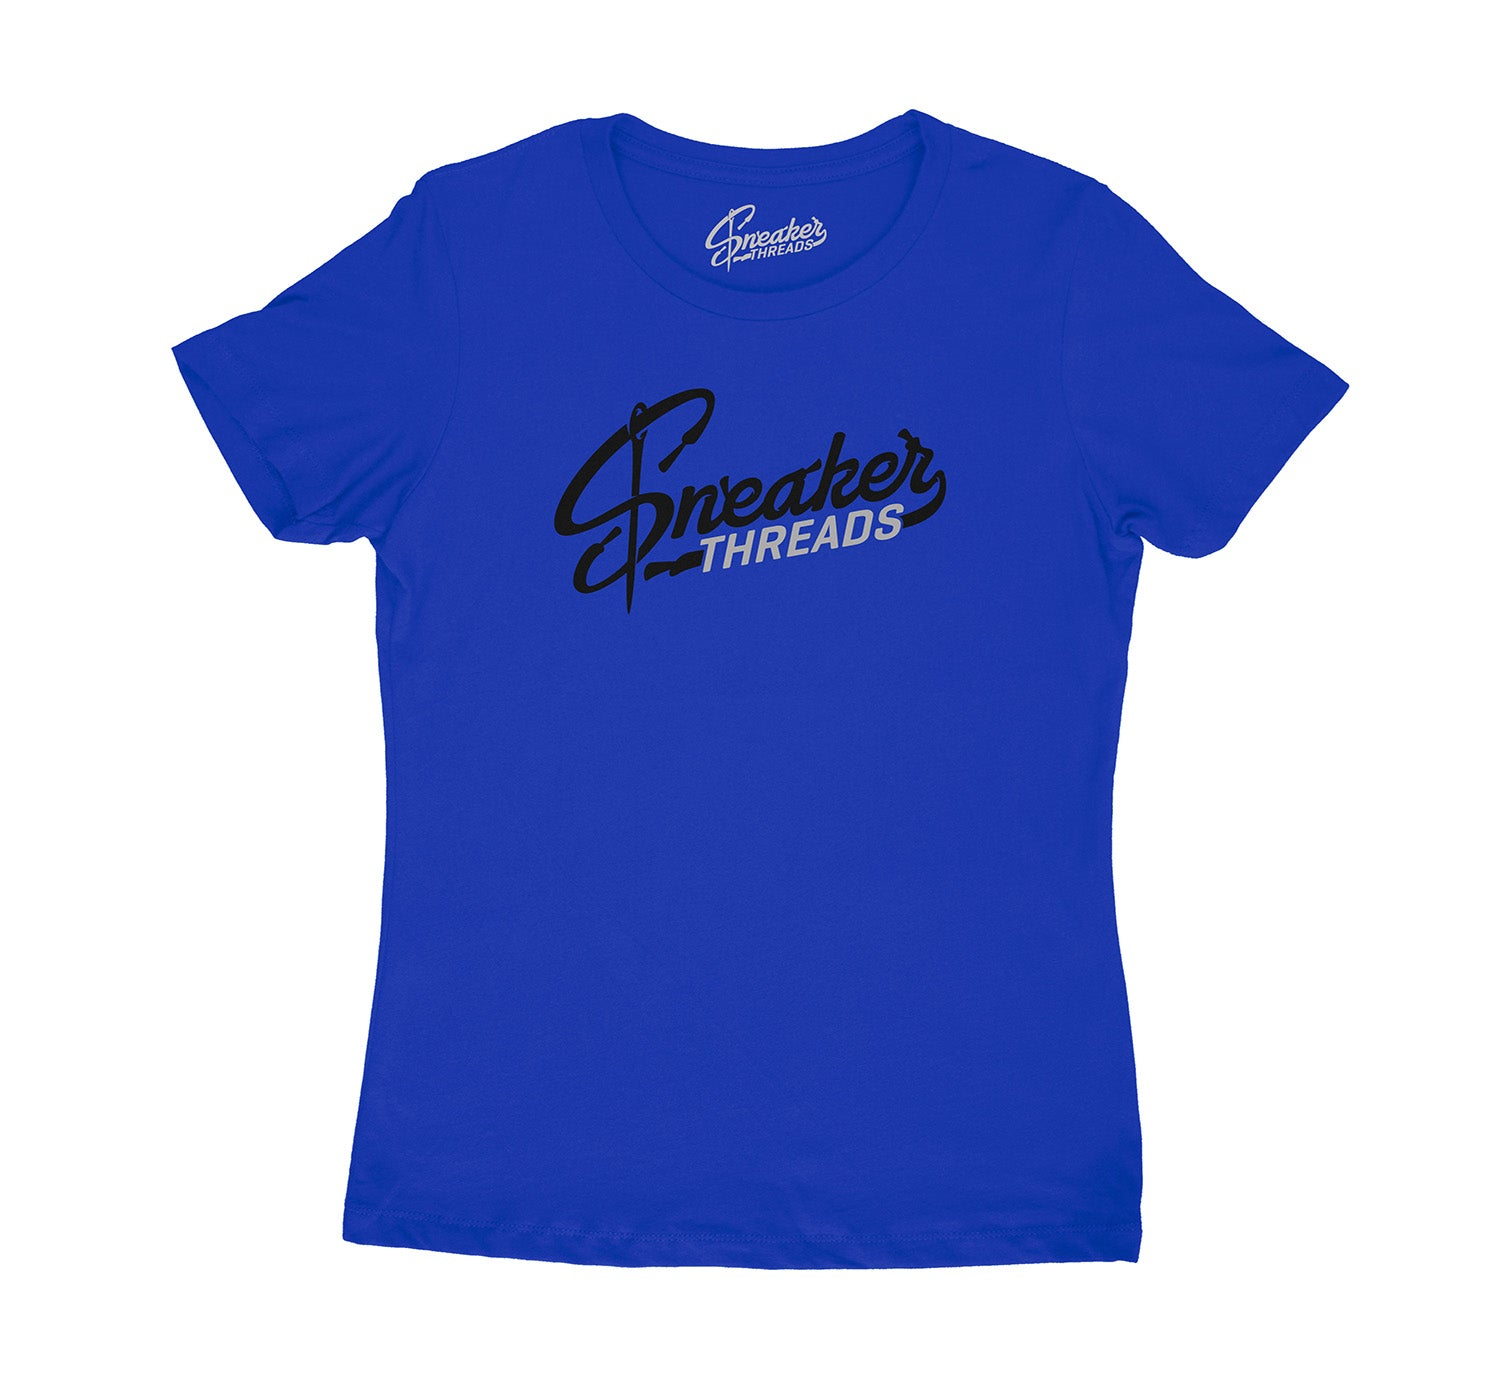 womens t shirts created to match the Jordan 10 game royal sneakers